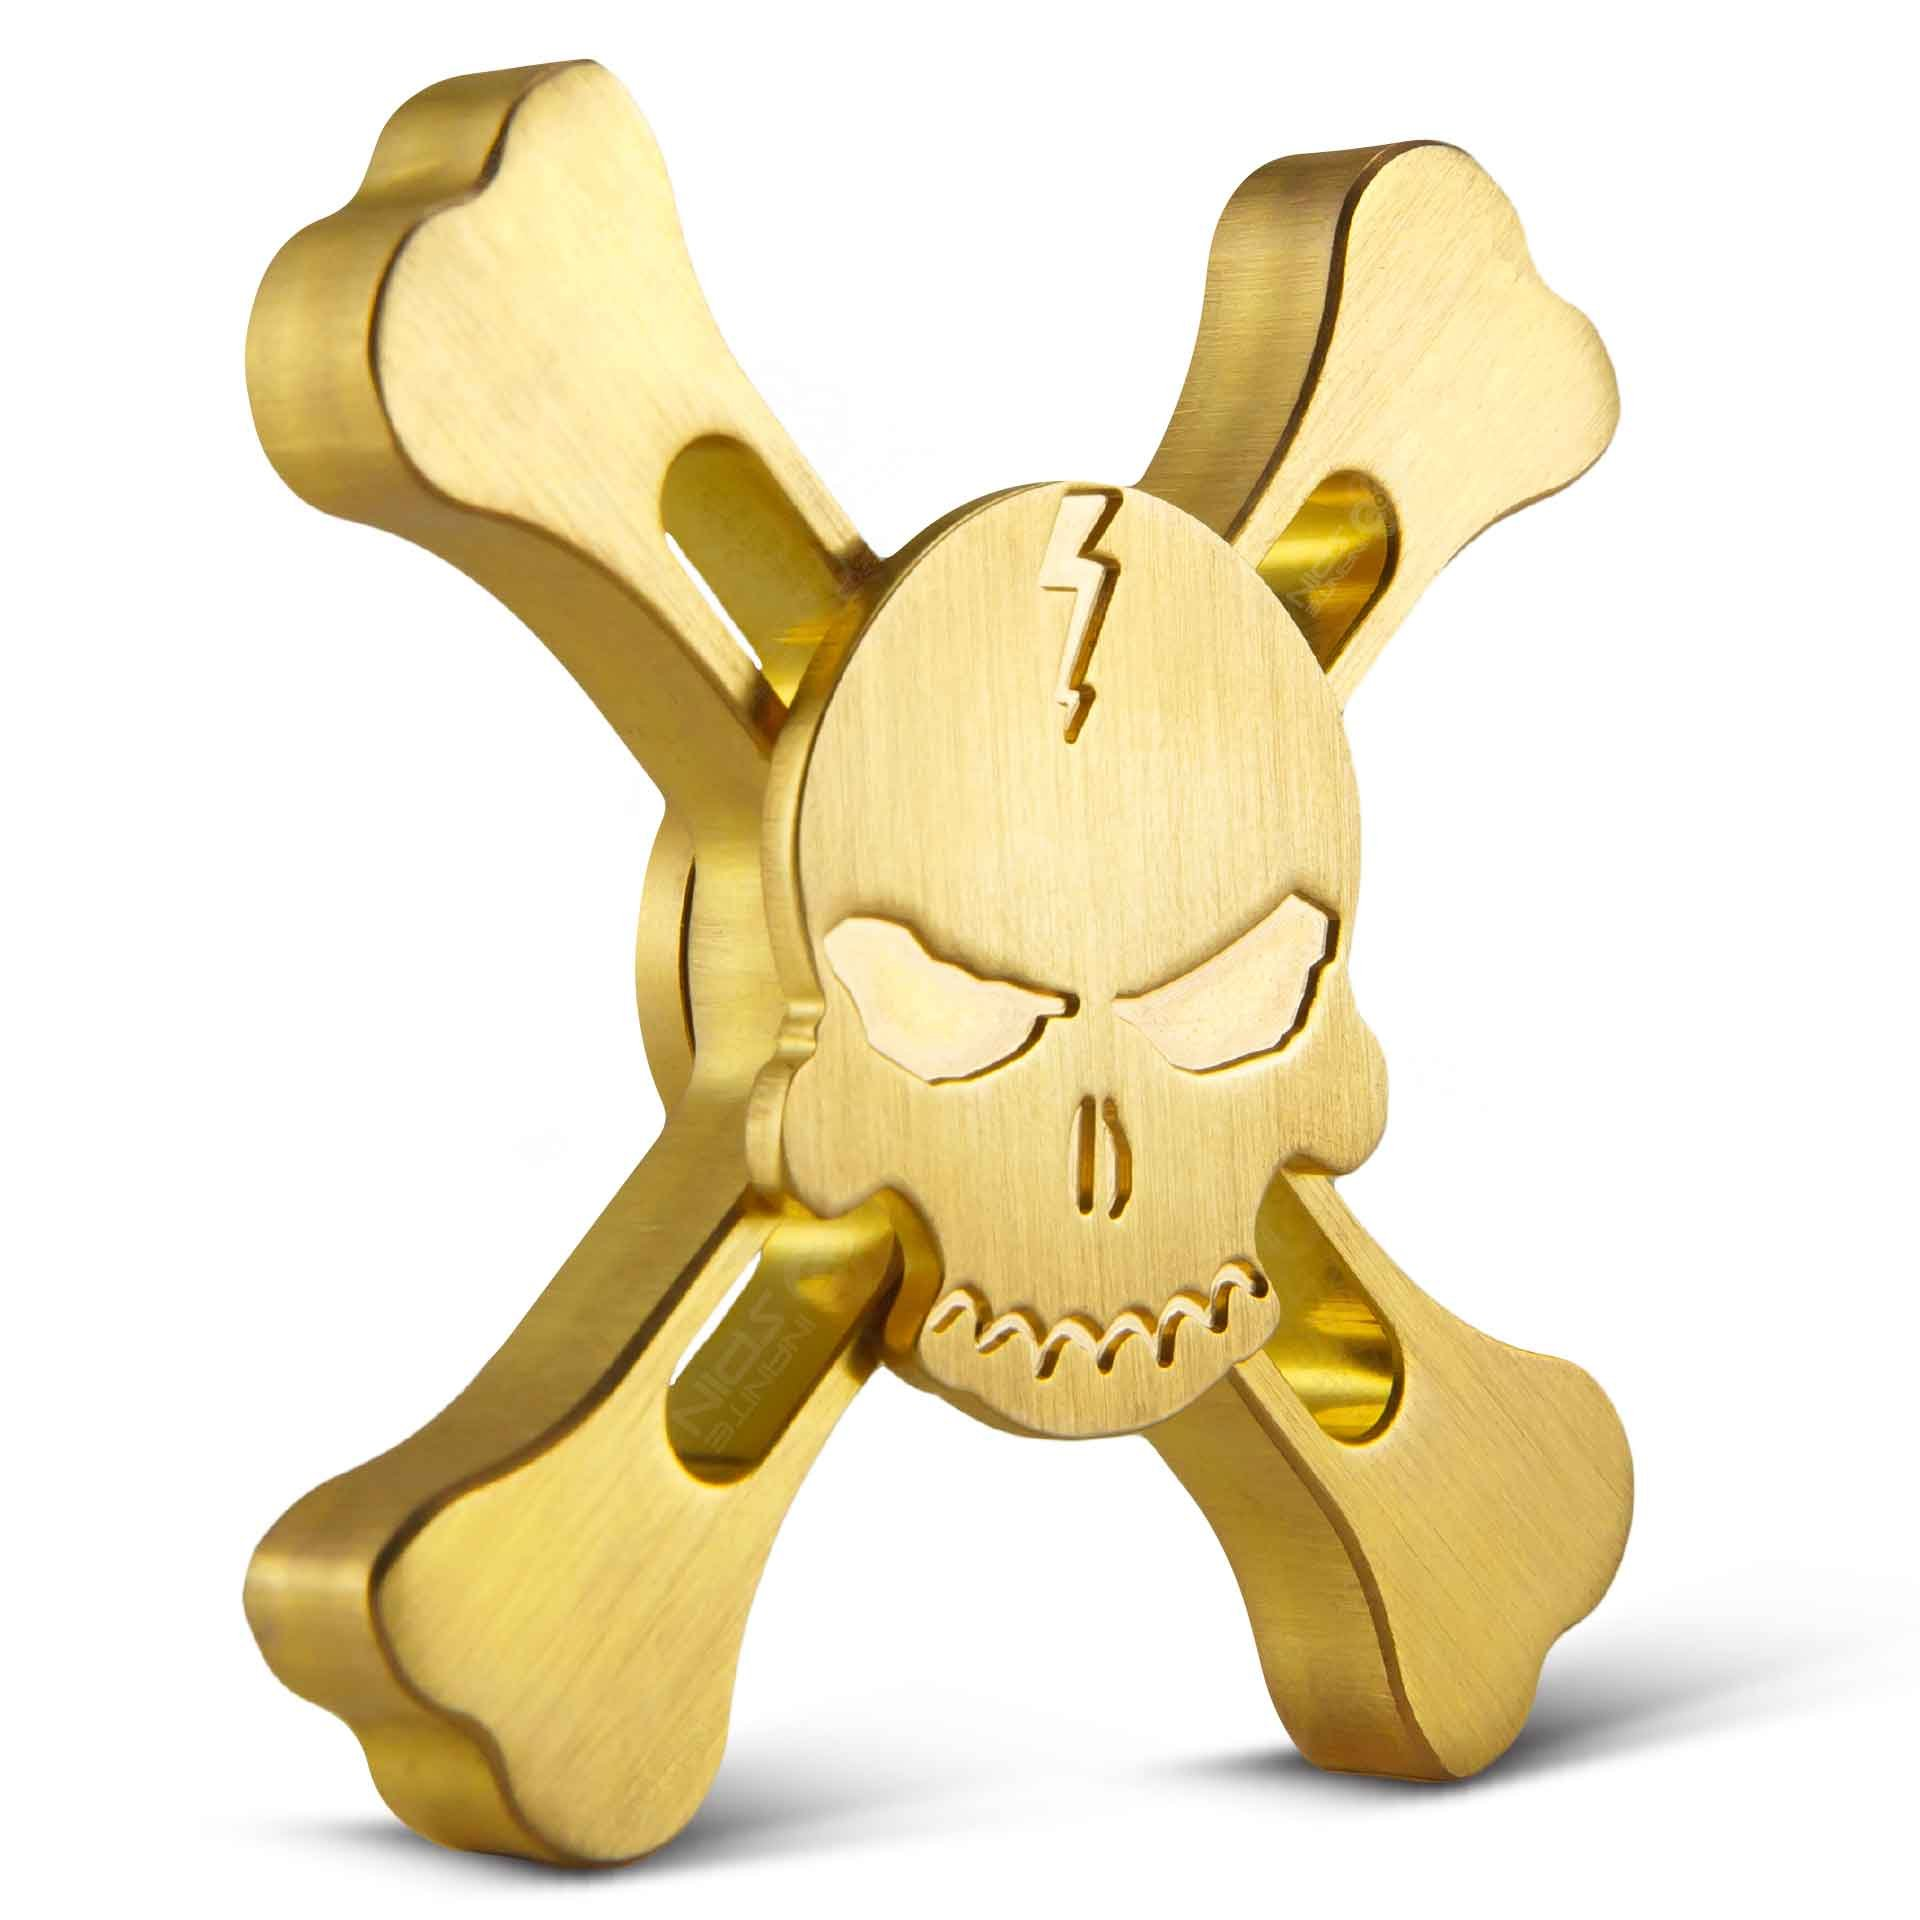 BONEYARD Fidget Spinner Toy By Infinite Spin - High Speed Hybrid Bearings - Perfect for ADHD, Increasing Focus, Concentration, And Quitting Bad Habits - 2 To 5 Minute Spin Times: EDC(Brass)